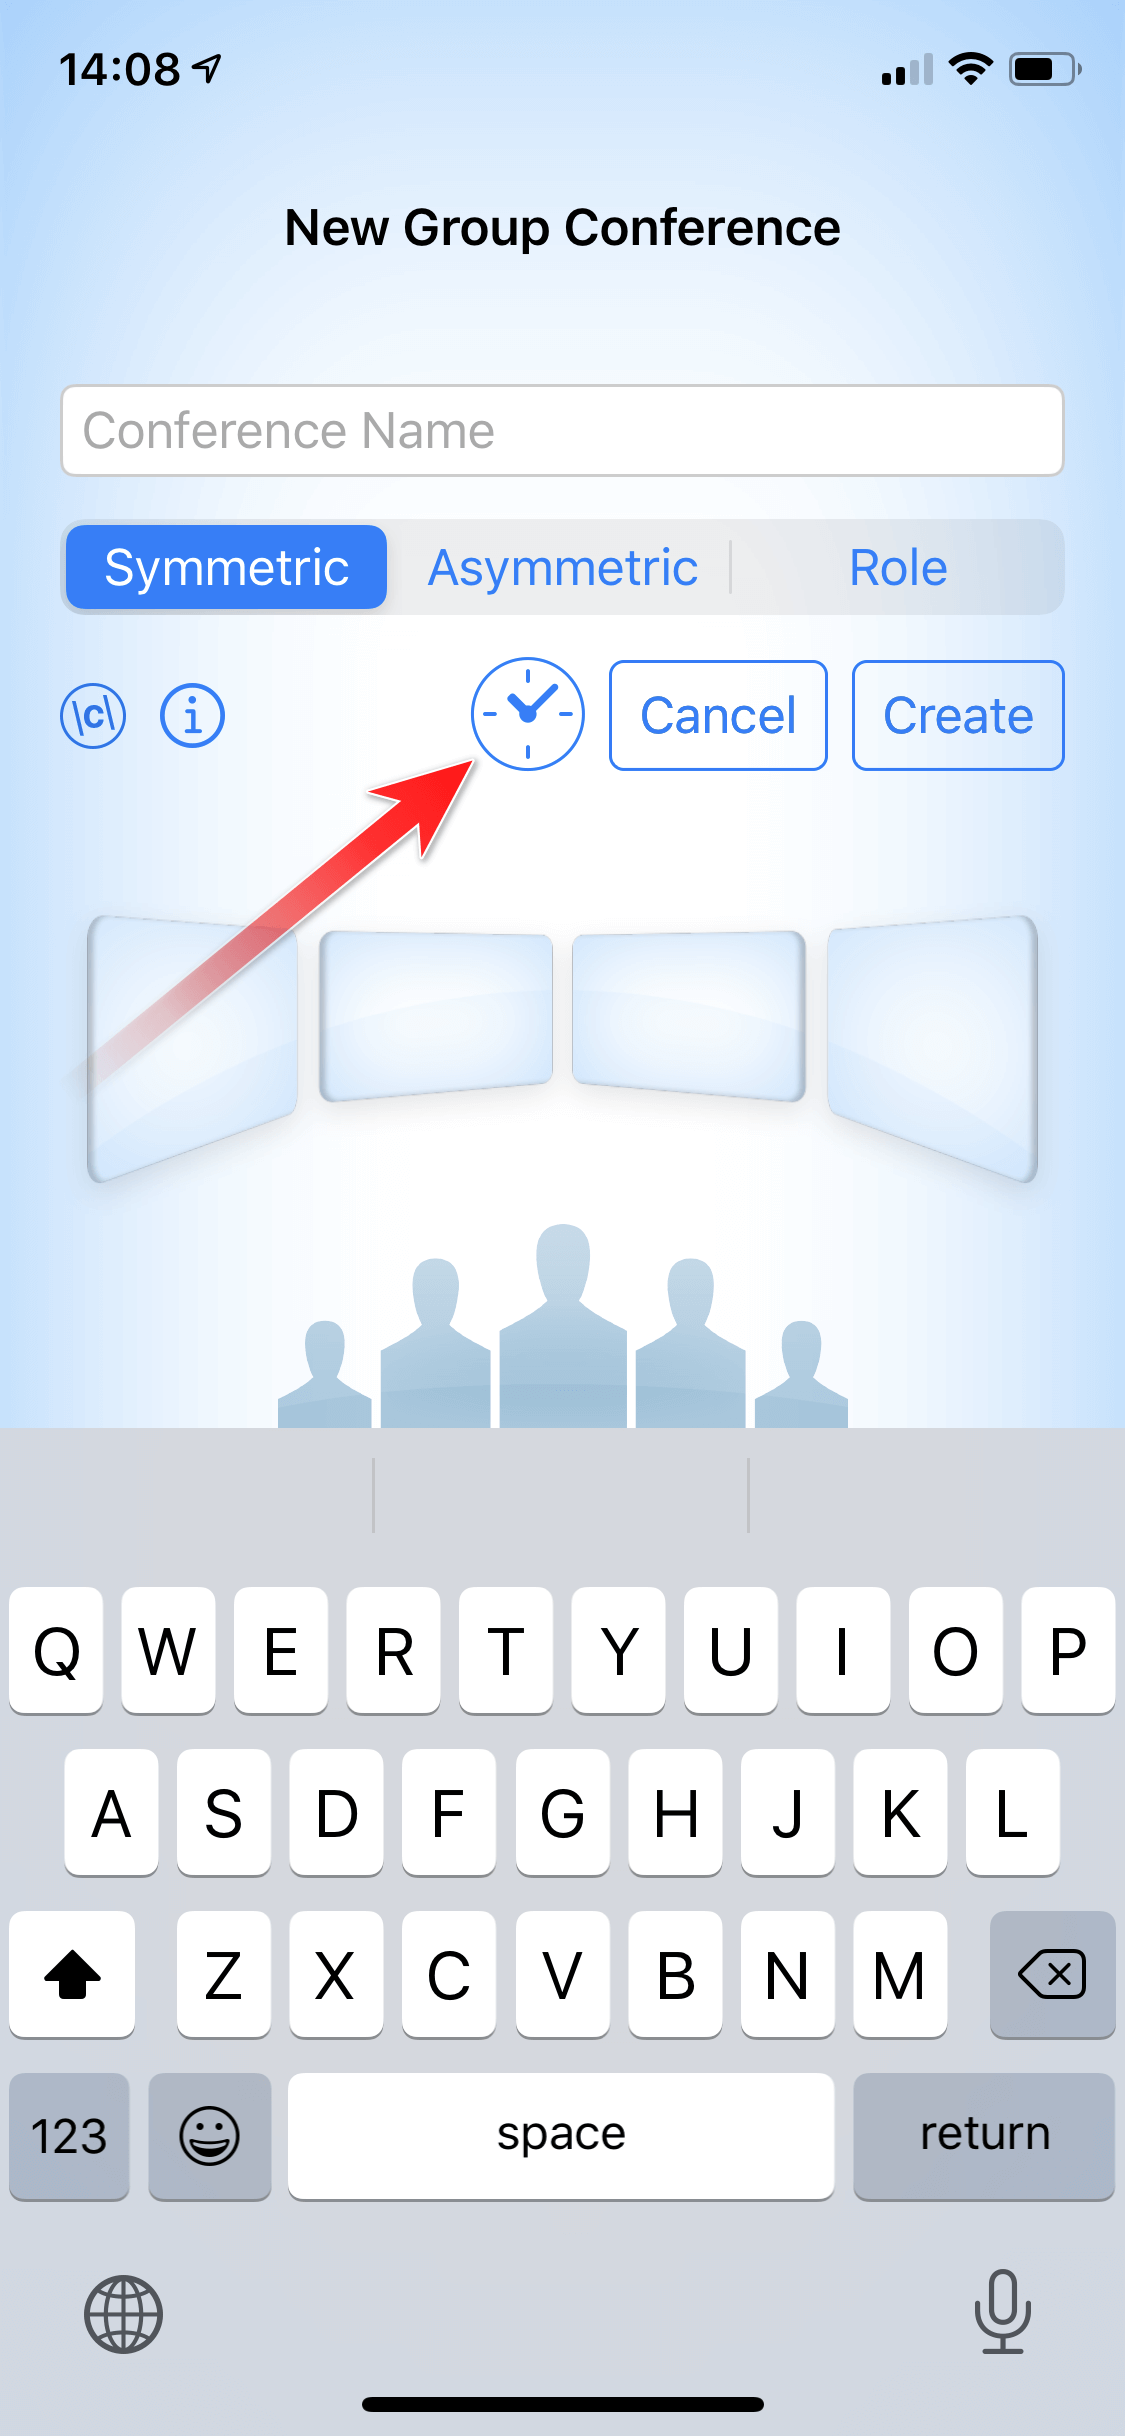 TrueConf 2.3 for iOS: Meeting scheduling and Metal support 4